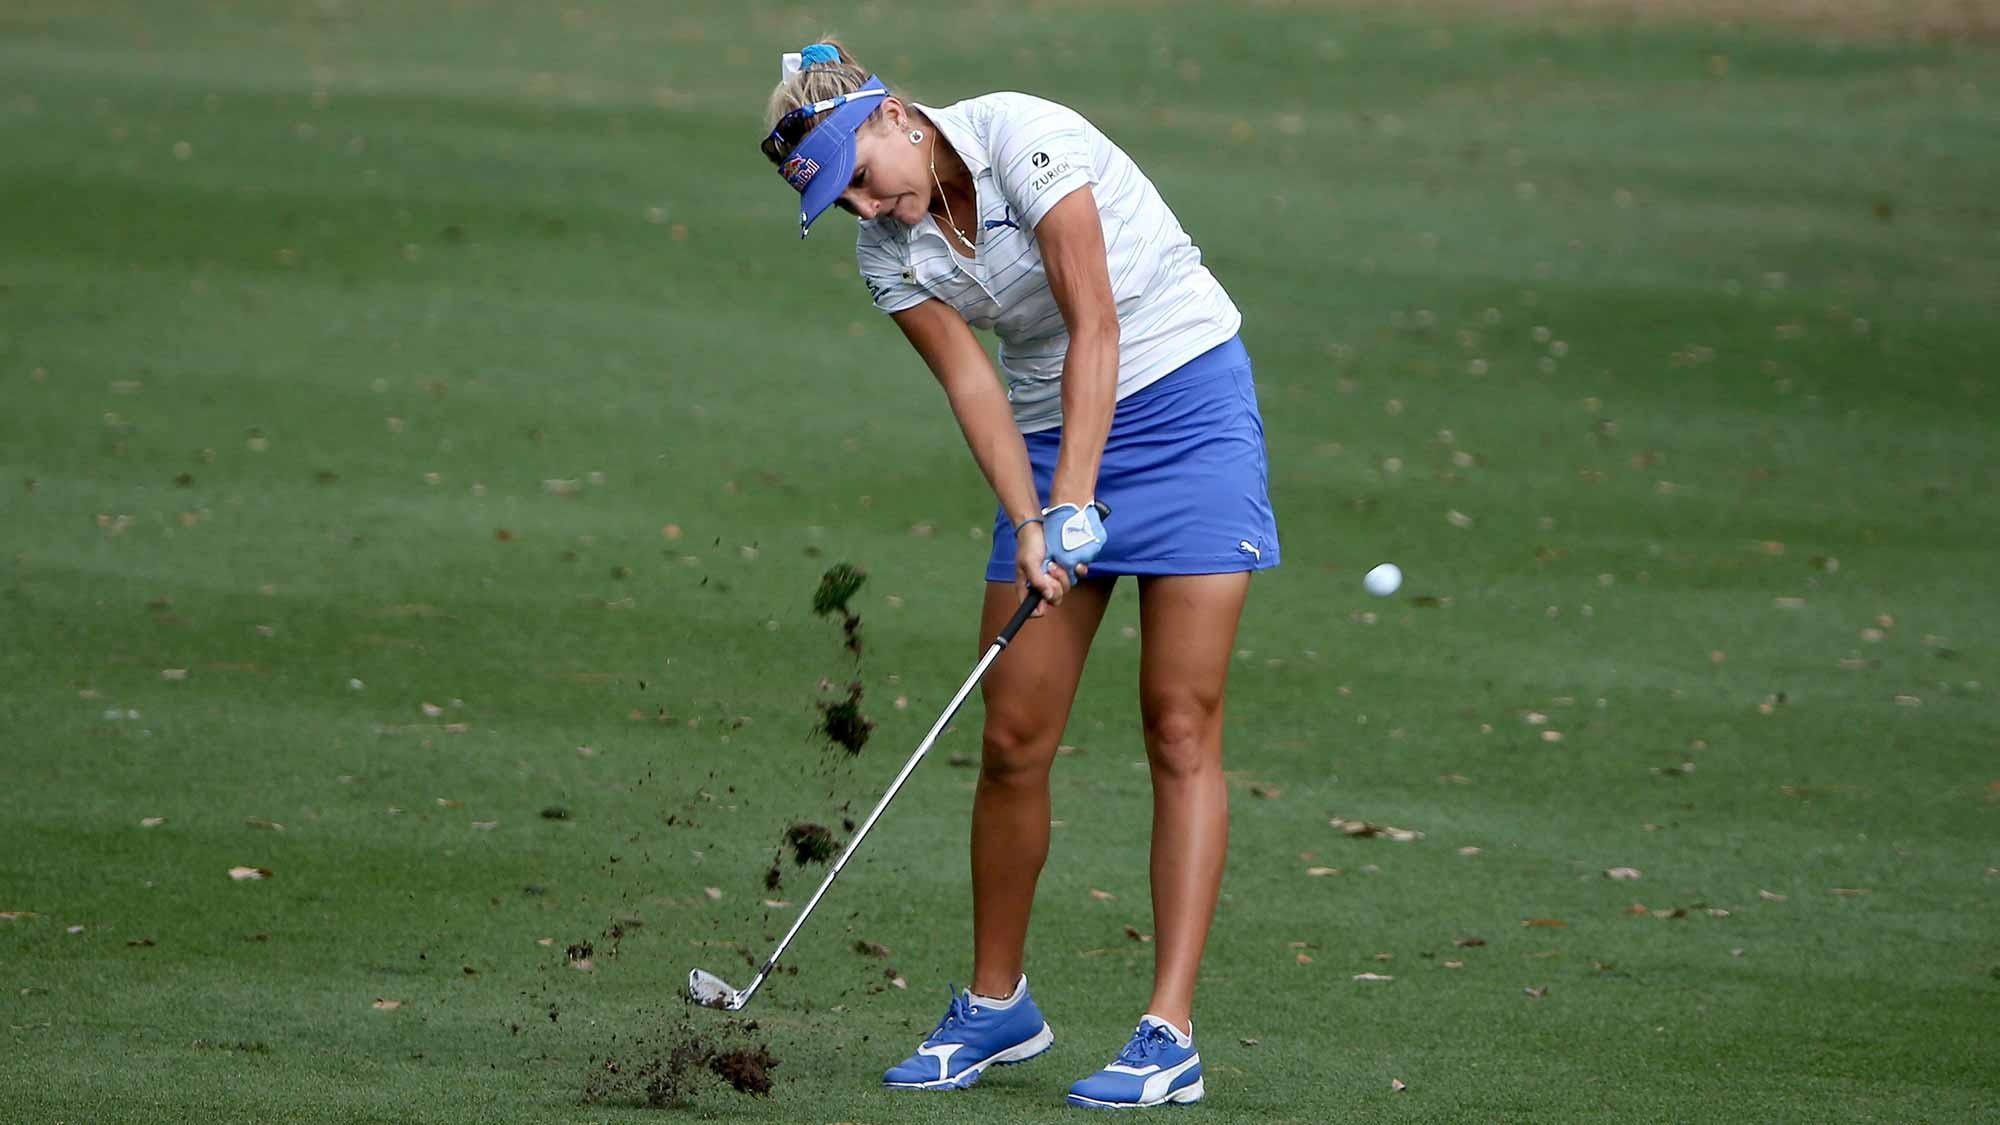 Lexi Thompson of the United States plays a shot on the eighth hole during the first round of the Coates Golf Championship Presented By R+L Carriers at Golden Ocala Golf Club